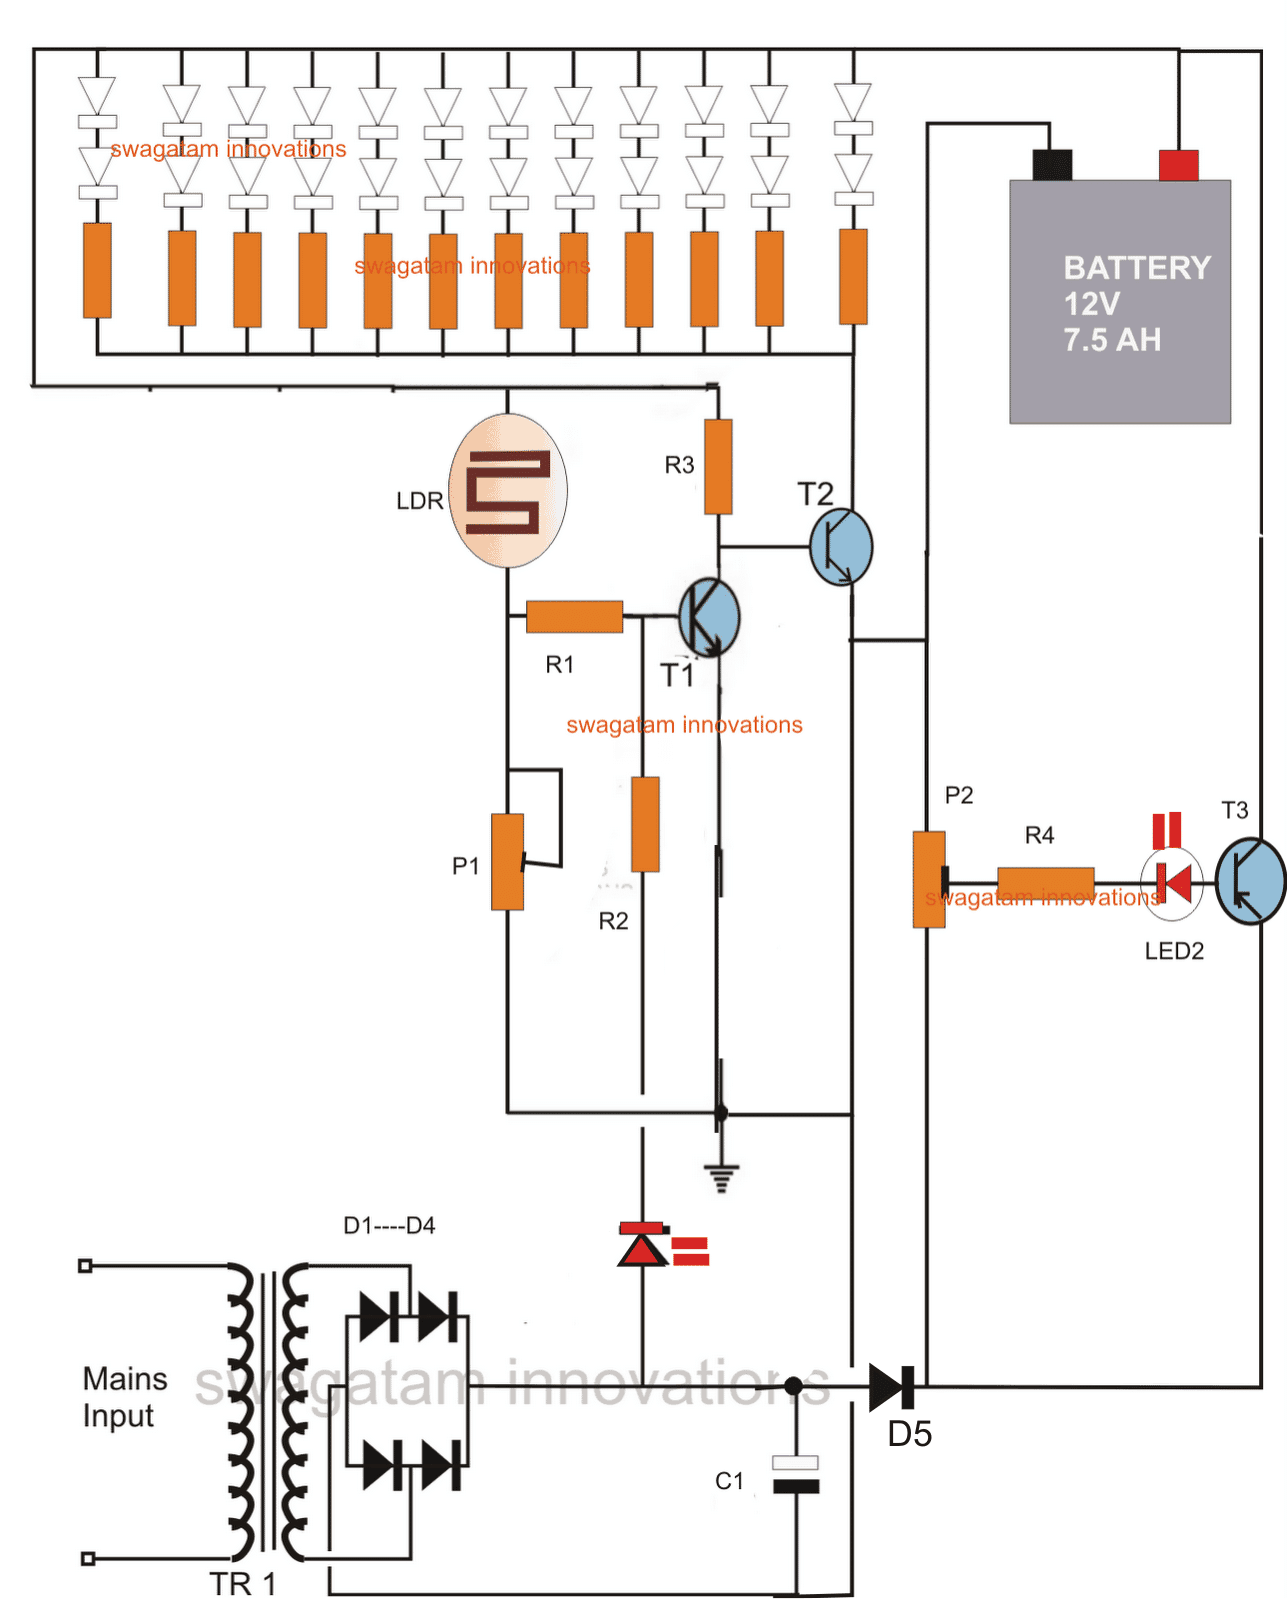 hight resolution of solar led emergency light circuit diagram led emergency light circuit with battery over charge protection